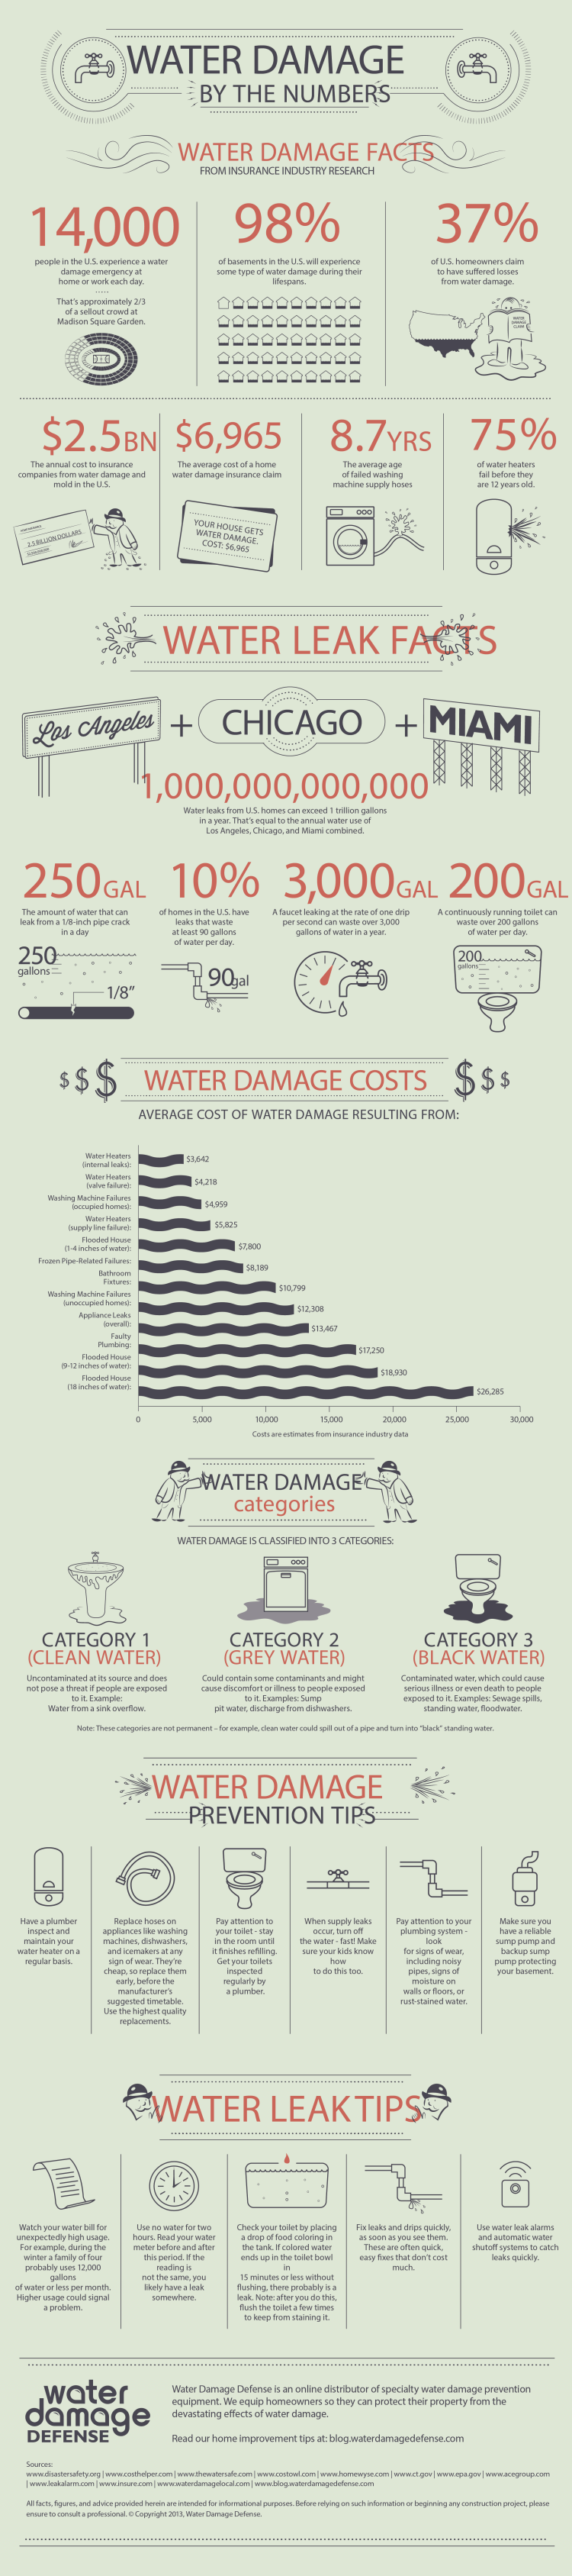 Water damage and mold cost the insurance industry $2.5 billion dollars per year, and the average cost of a home water damage insurance claim is $6,965.